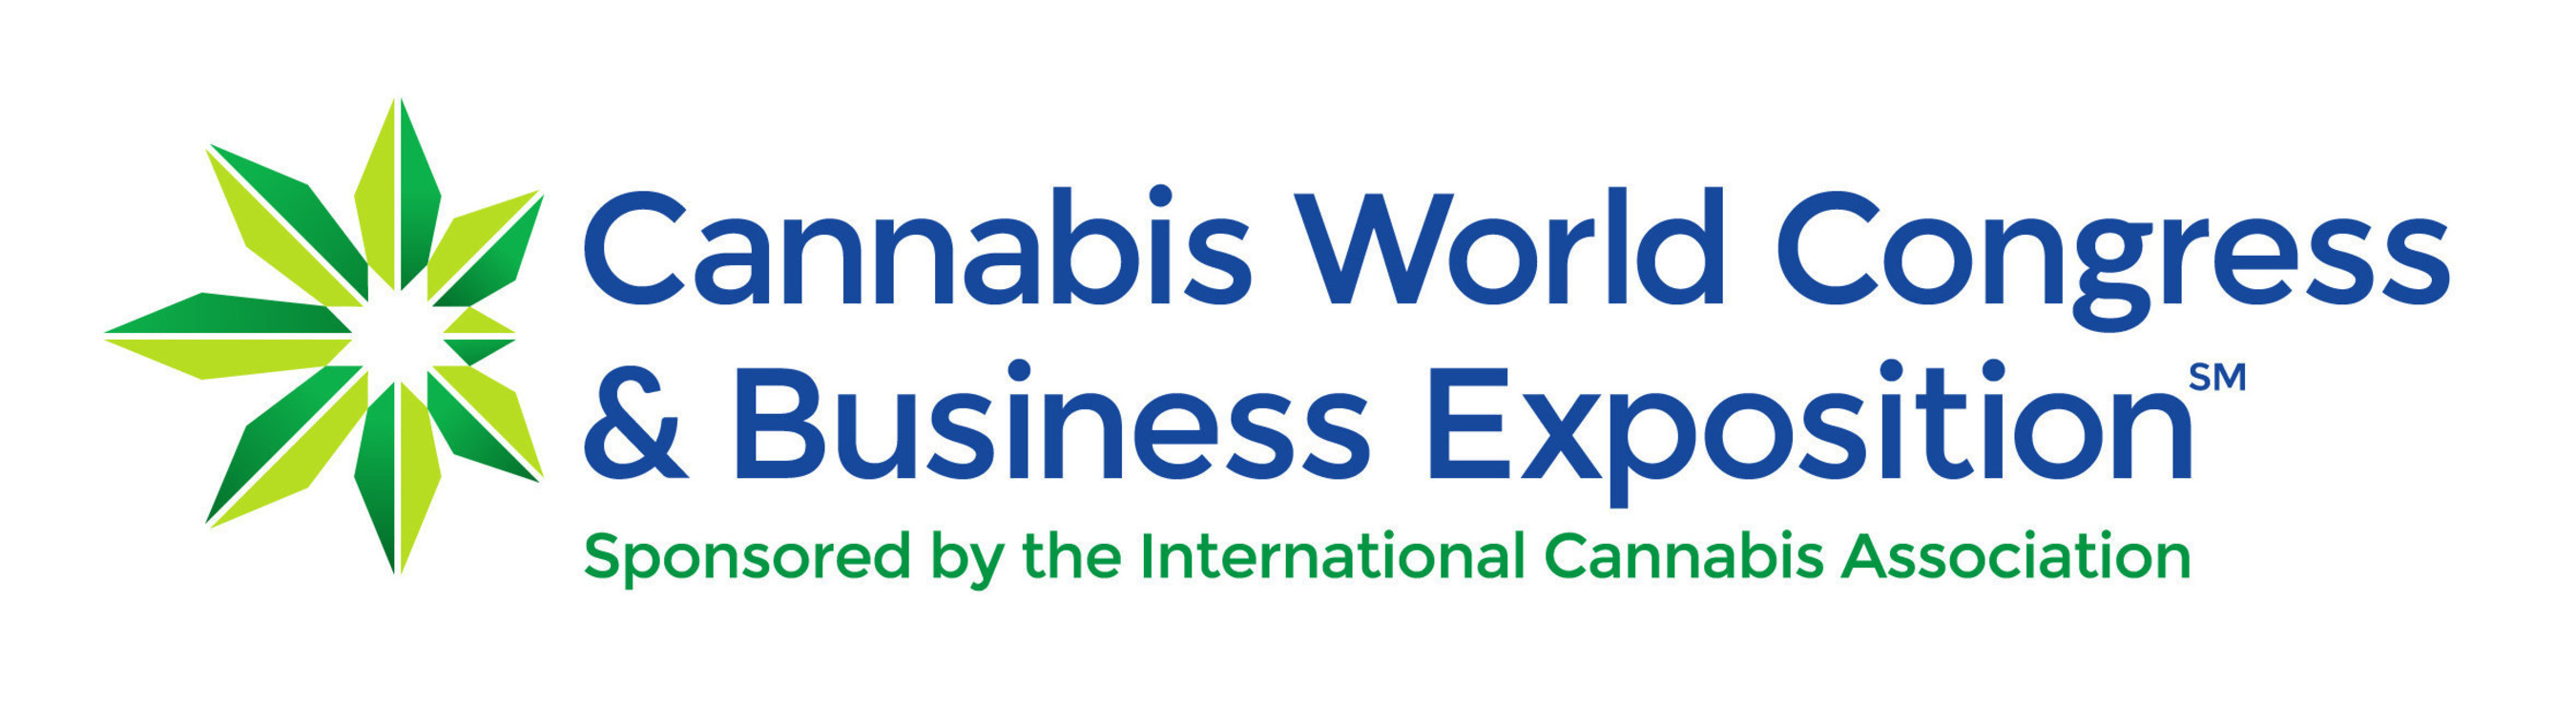 Cannabis World Congress & Business Expositions, www.cwcbexpo.com.